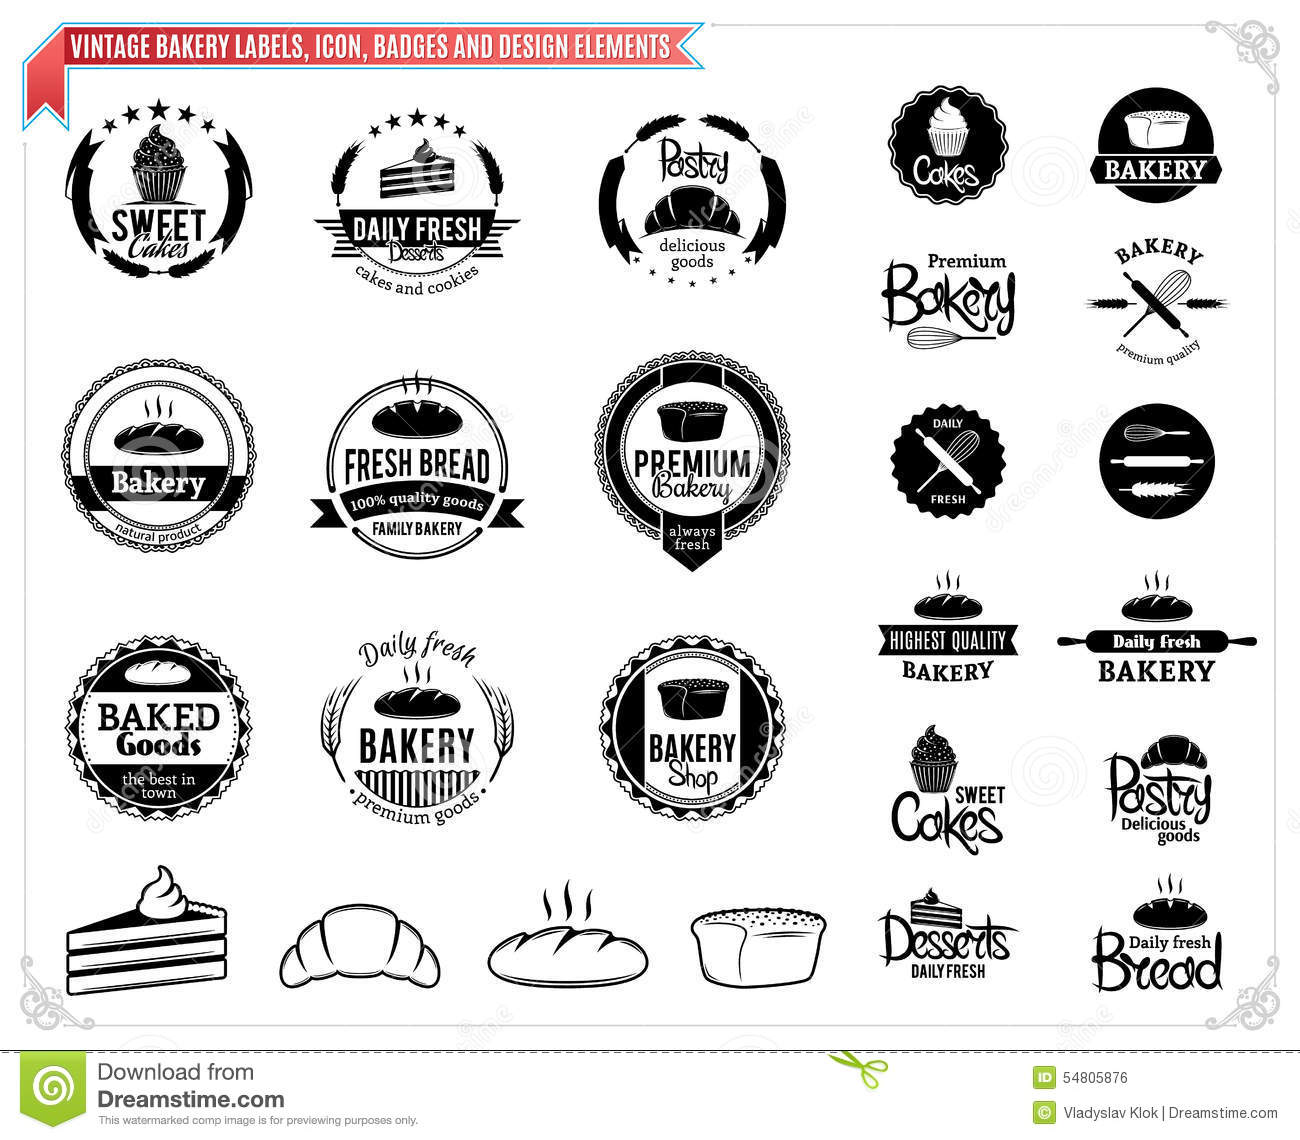 Vintage bakery labels templates icons badges and design for Work badges template